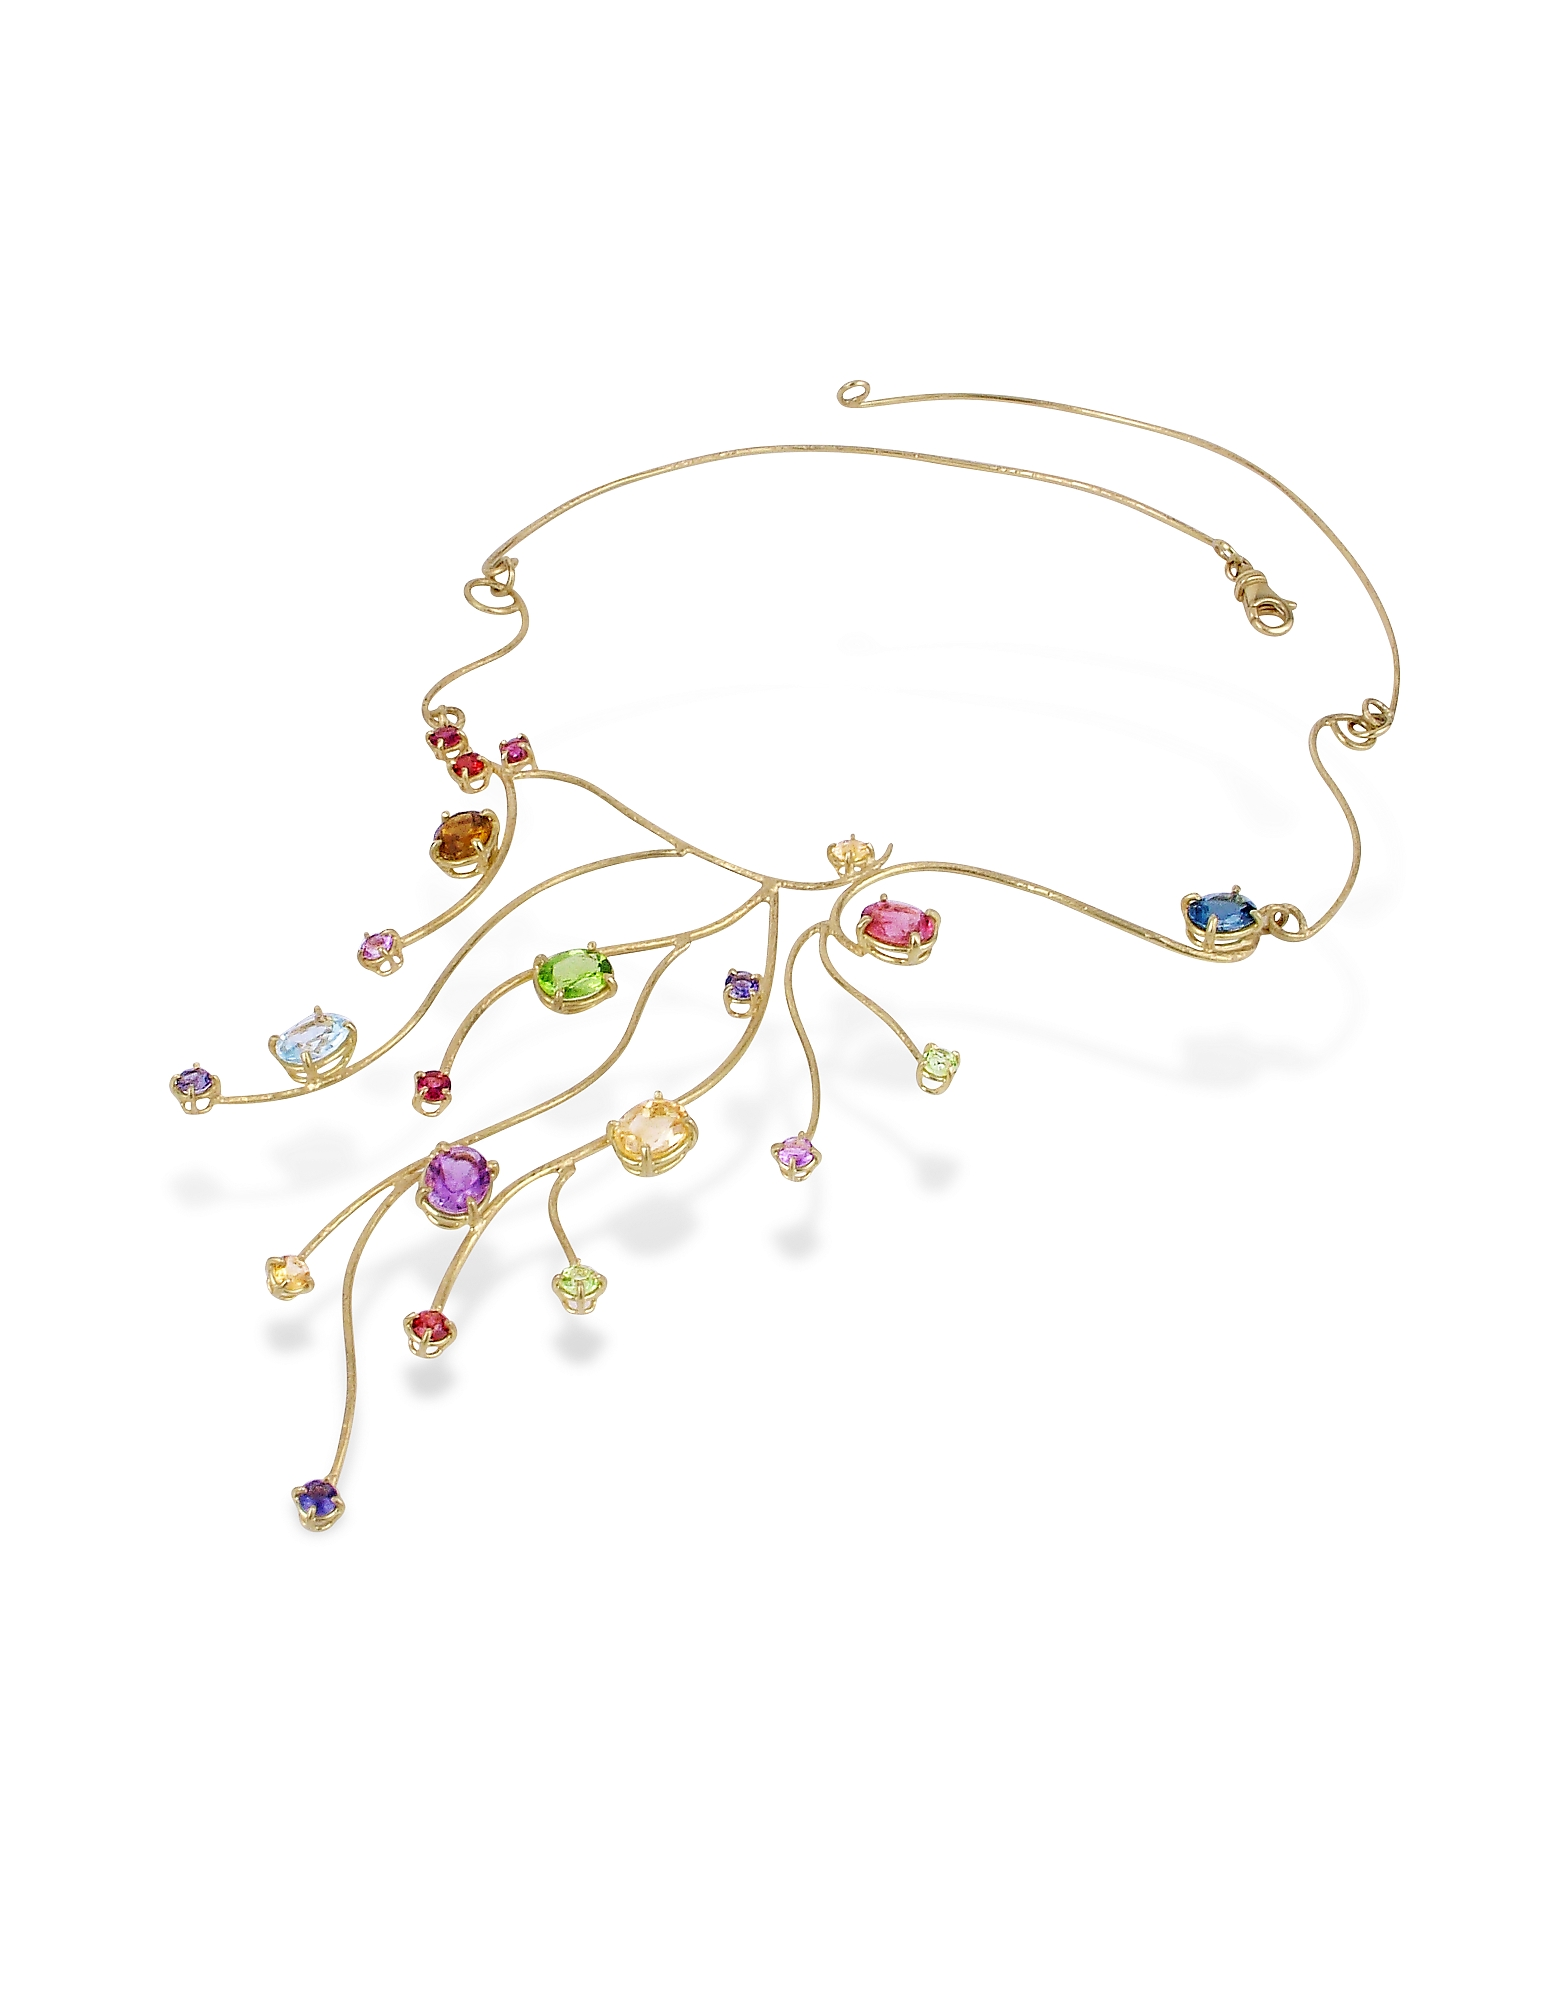 Forzieri Necklaces, 18k Yellow Gold Multi-Gemstones Necklace